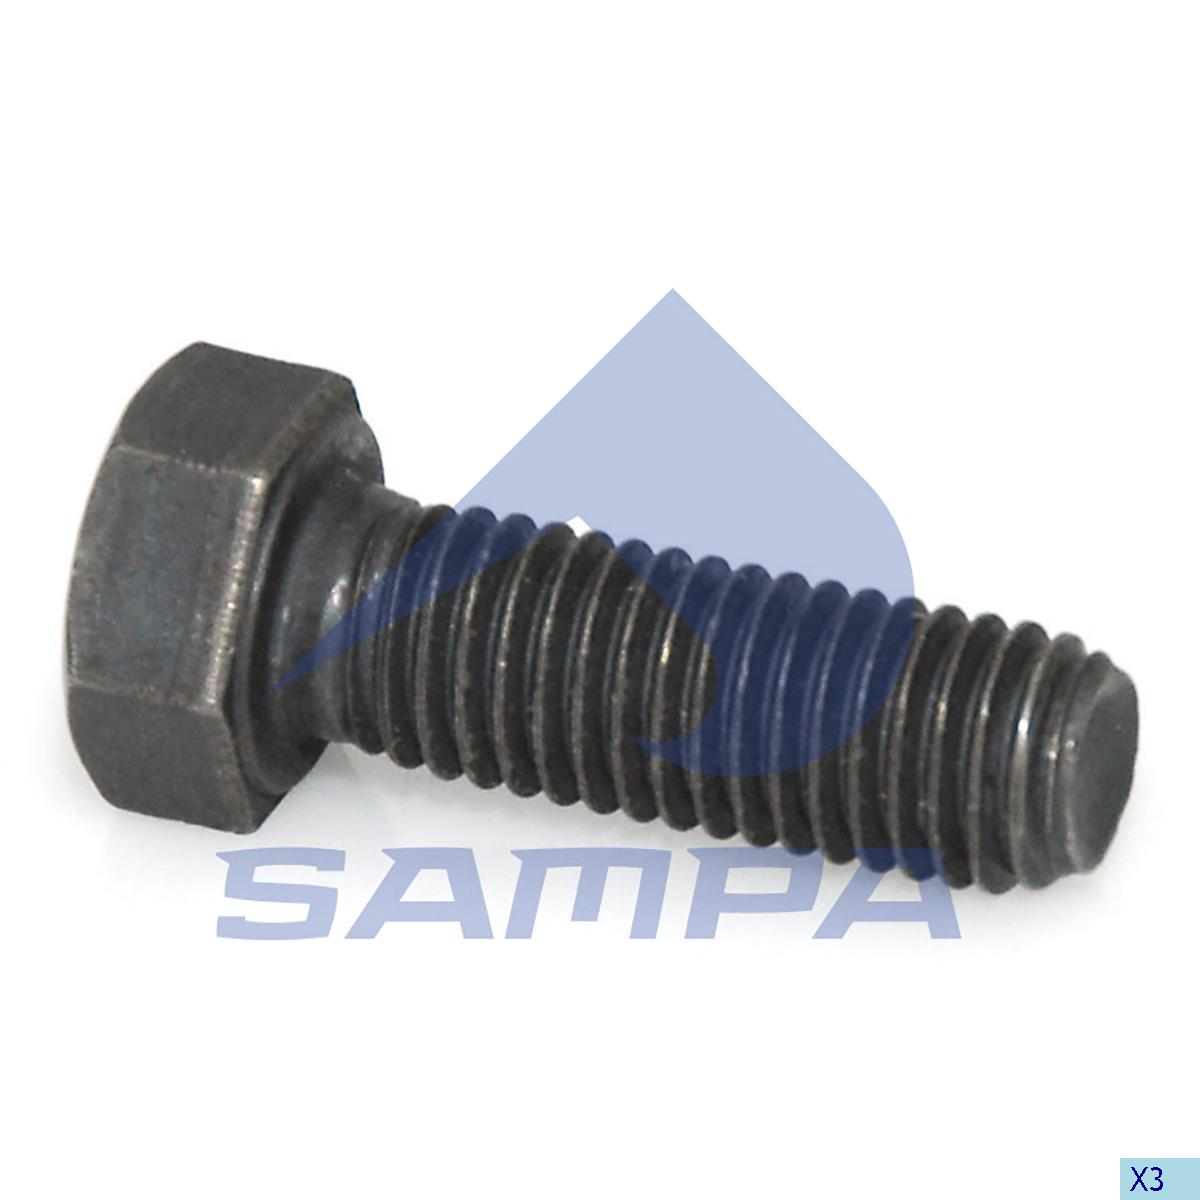 Screw, Wheel Hub, Volvo, Power Unit